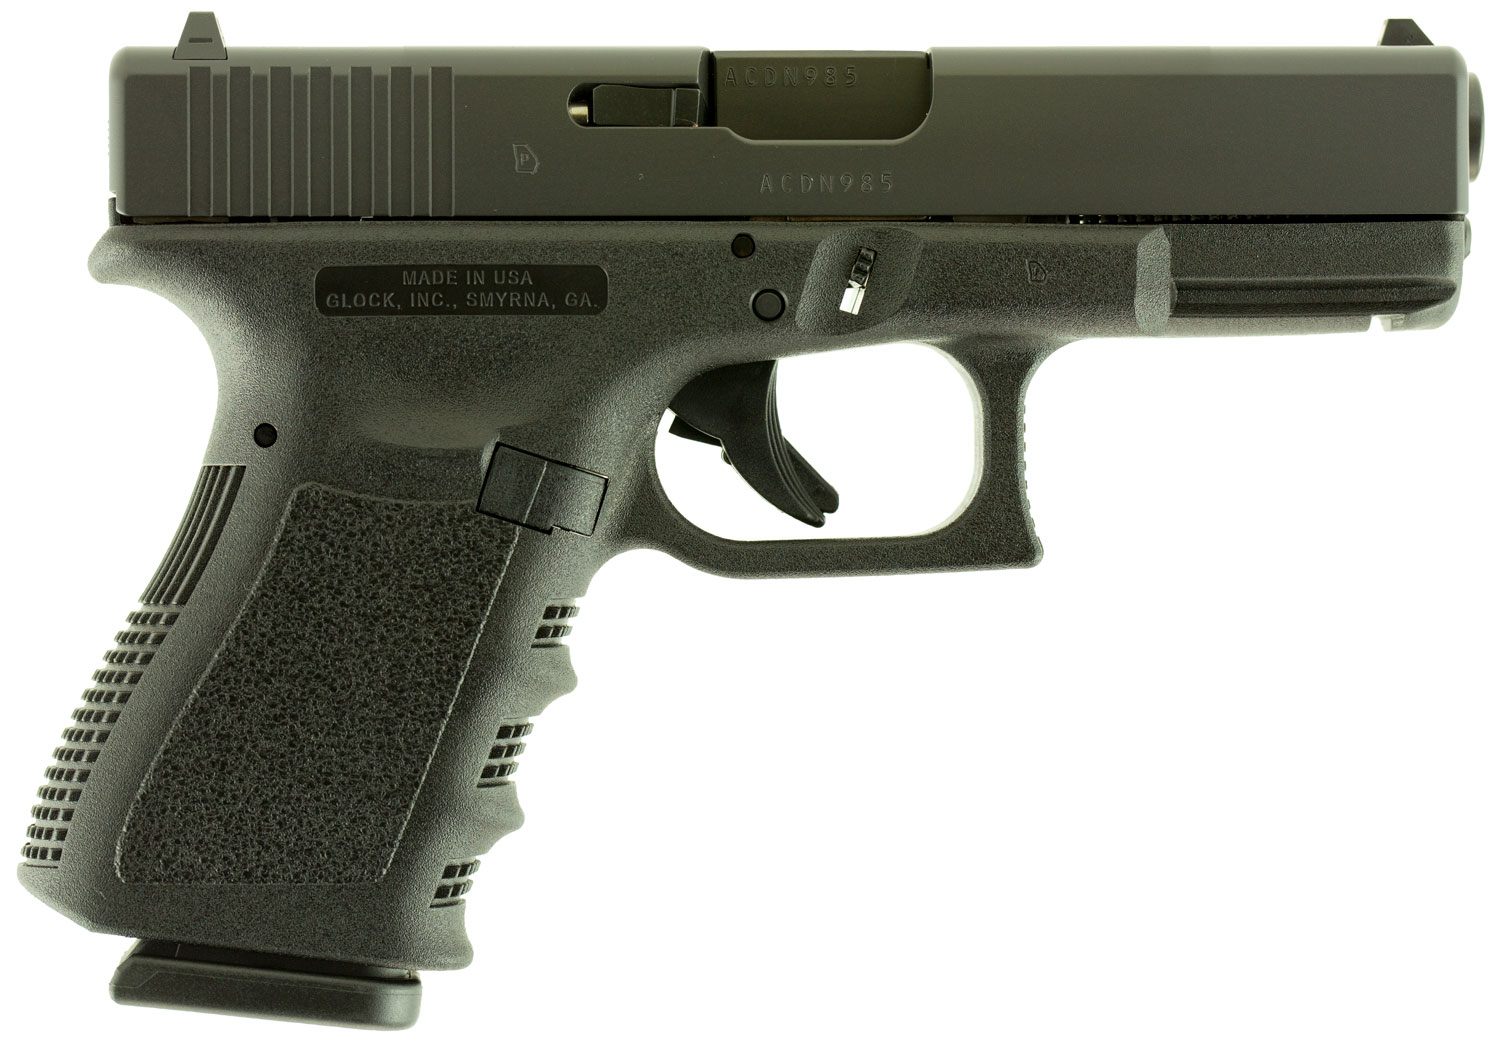 Glock UI1950201 G19 Compact 9mm Luger 4.01